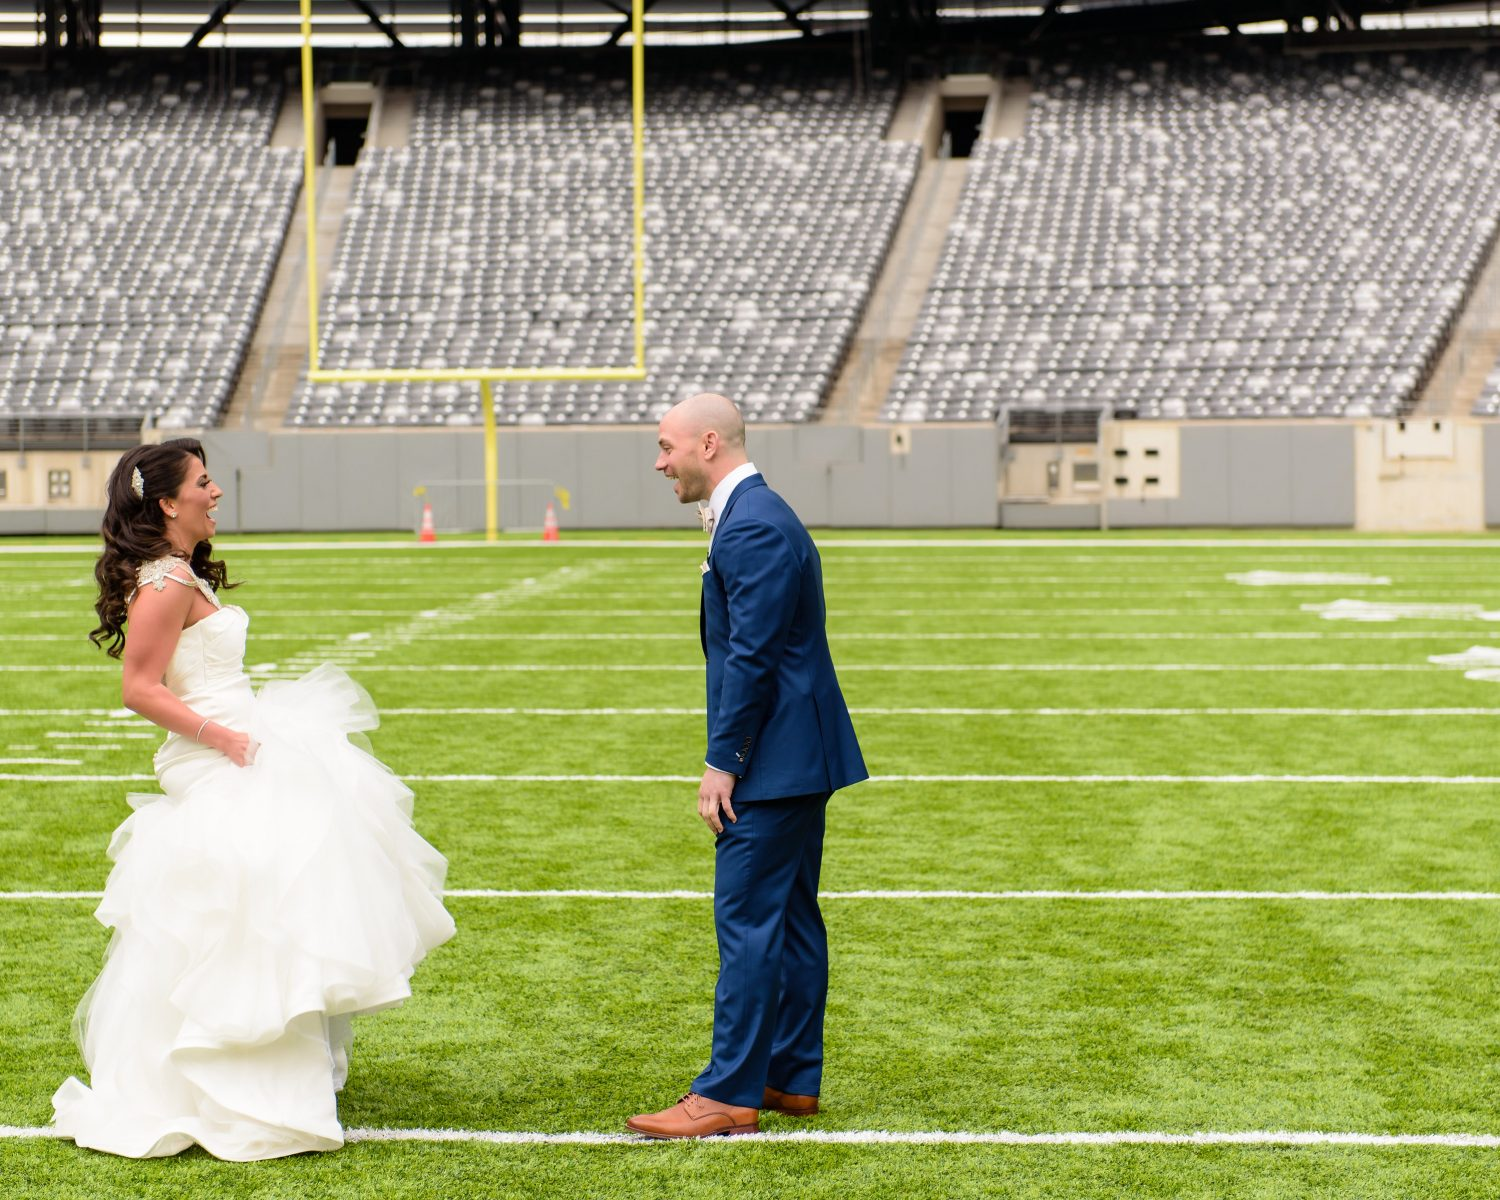 Casey Puleo And Ed Triggs Giants Wedding In MetLife Stadium Credit Susan Stripling Photography